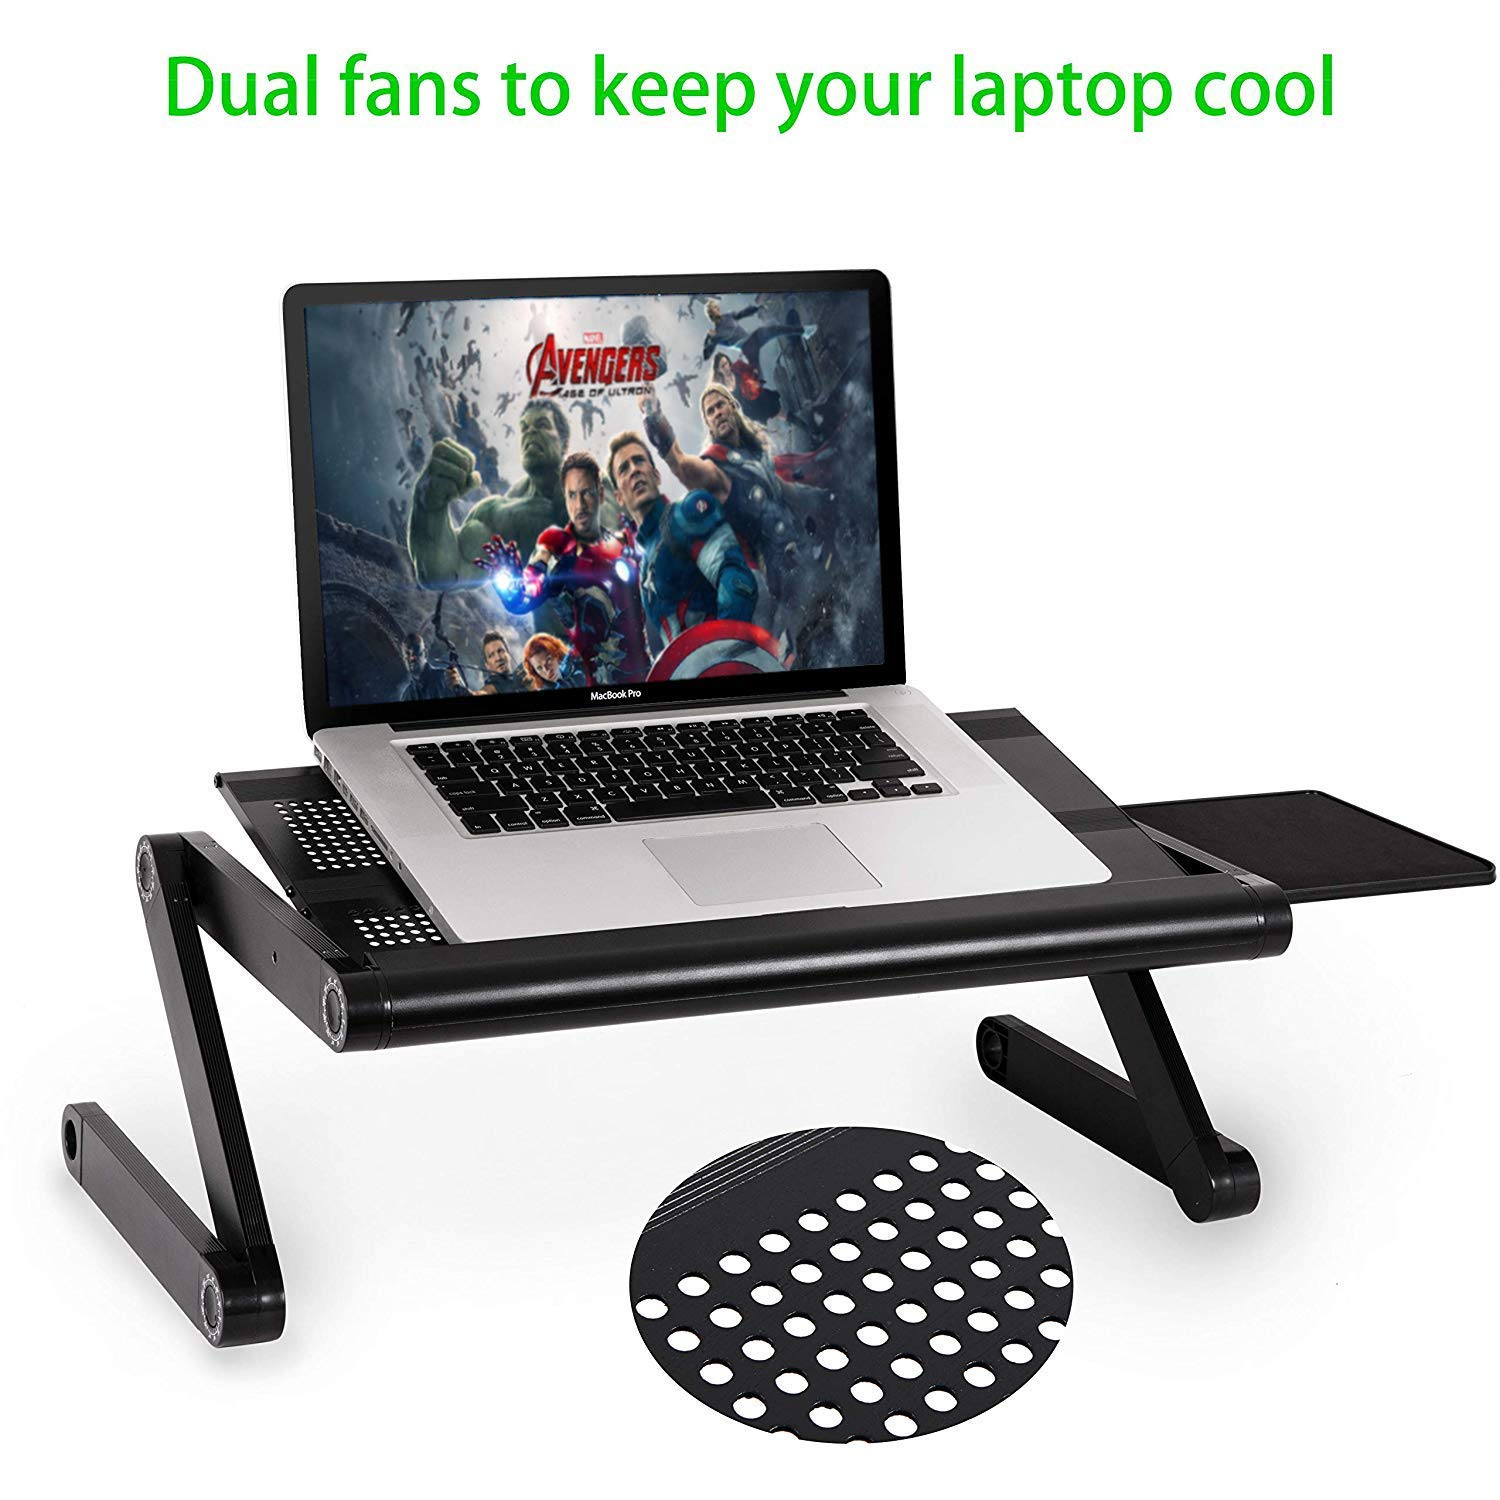 Laptop Table Stand,Portable Laptop Stand for Desk & Bed - Adjustable Riser Lap Tray Stand-Up Computer Lapdesks with Mouse Pad Side Compatible MacBook,Notebook & Tablets for Size up to 17'' (48cm) by YOJULY (Image #3)